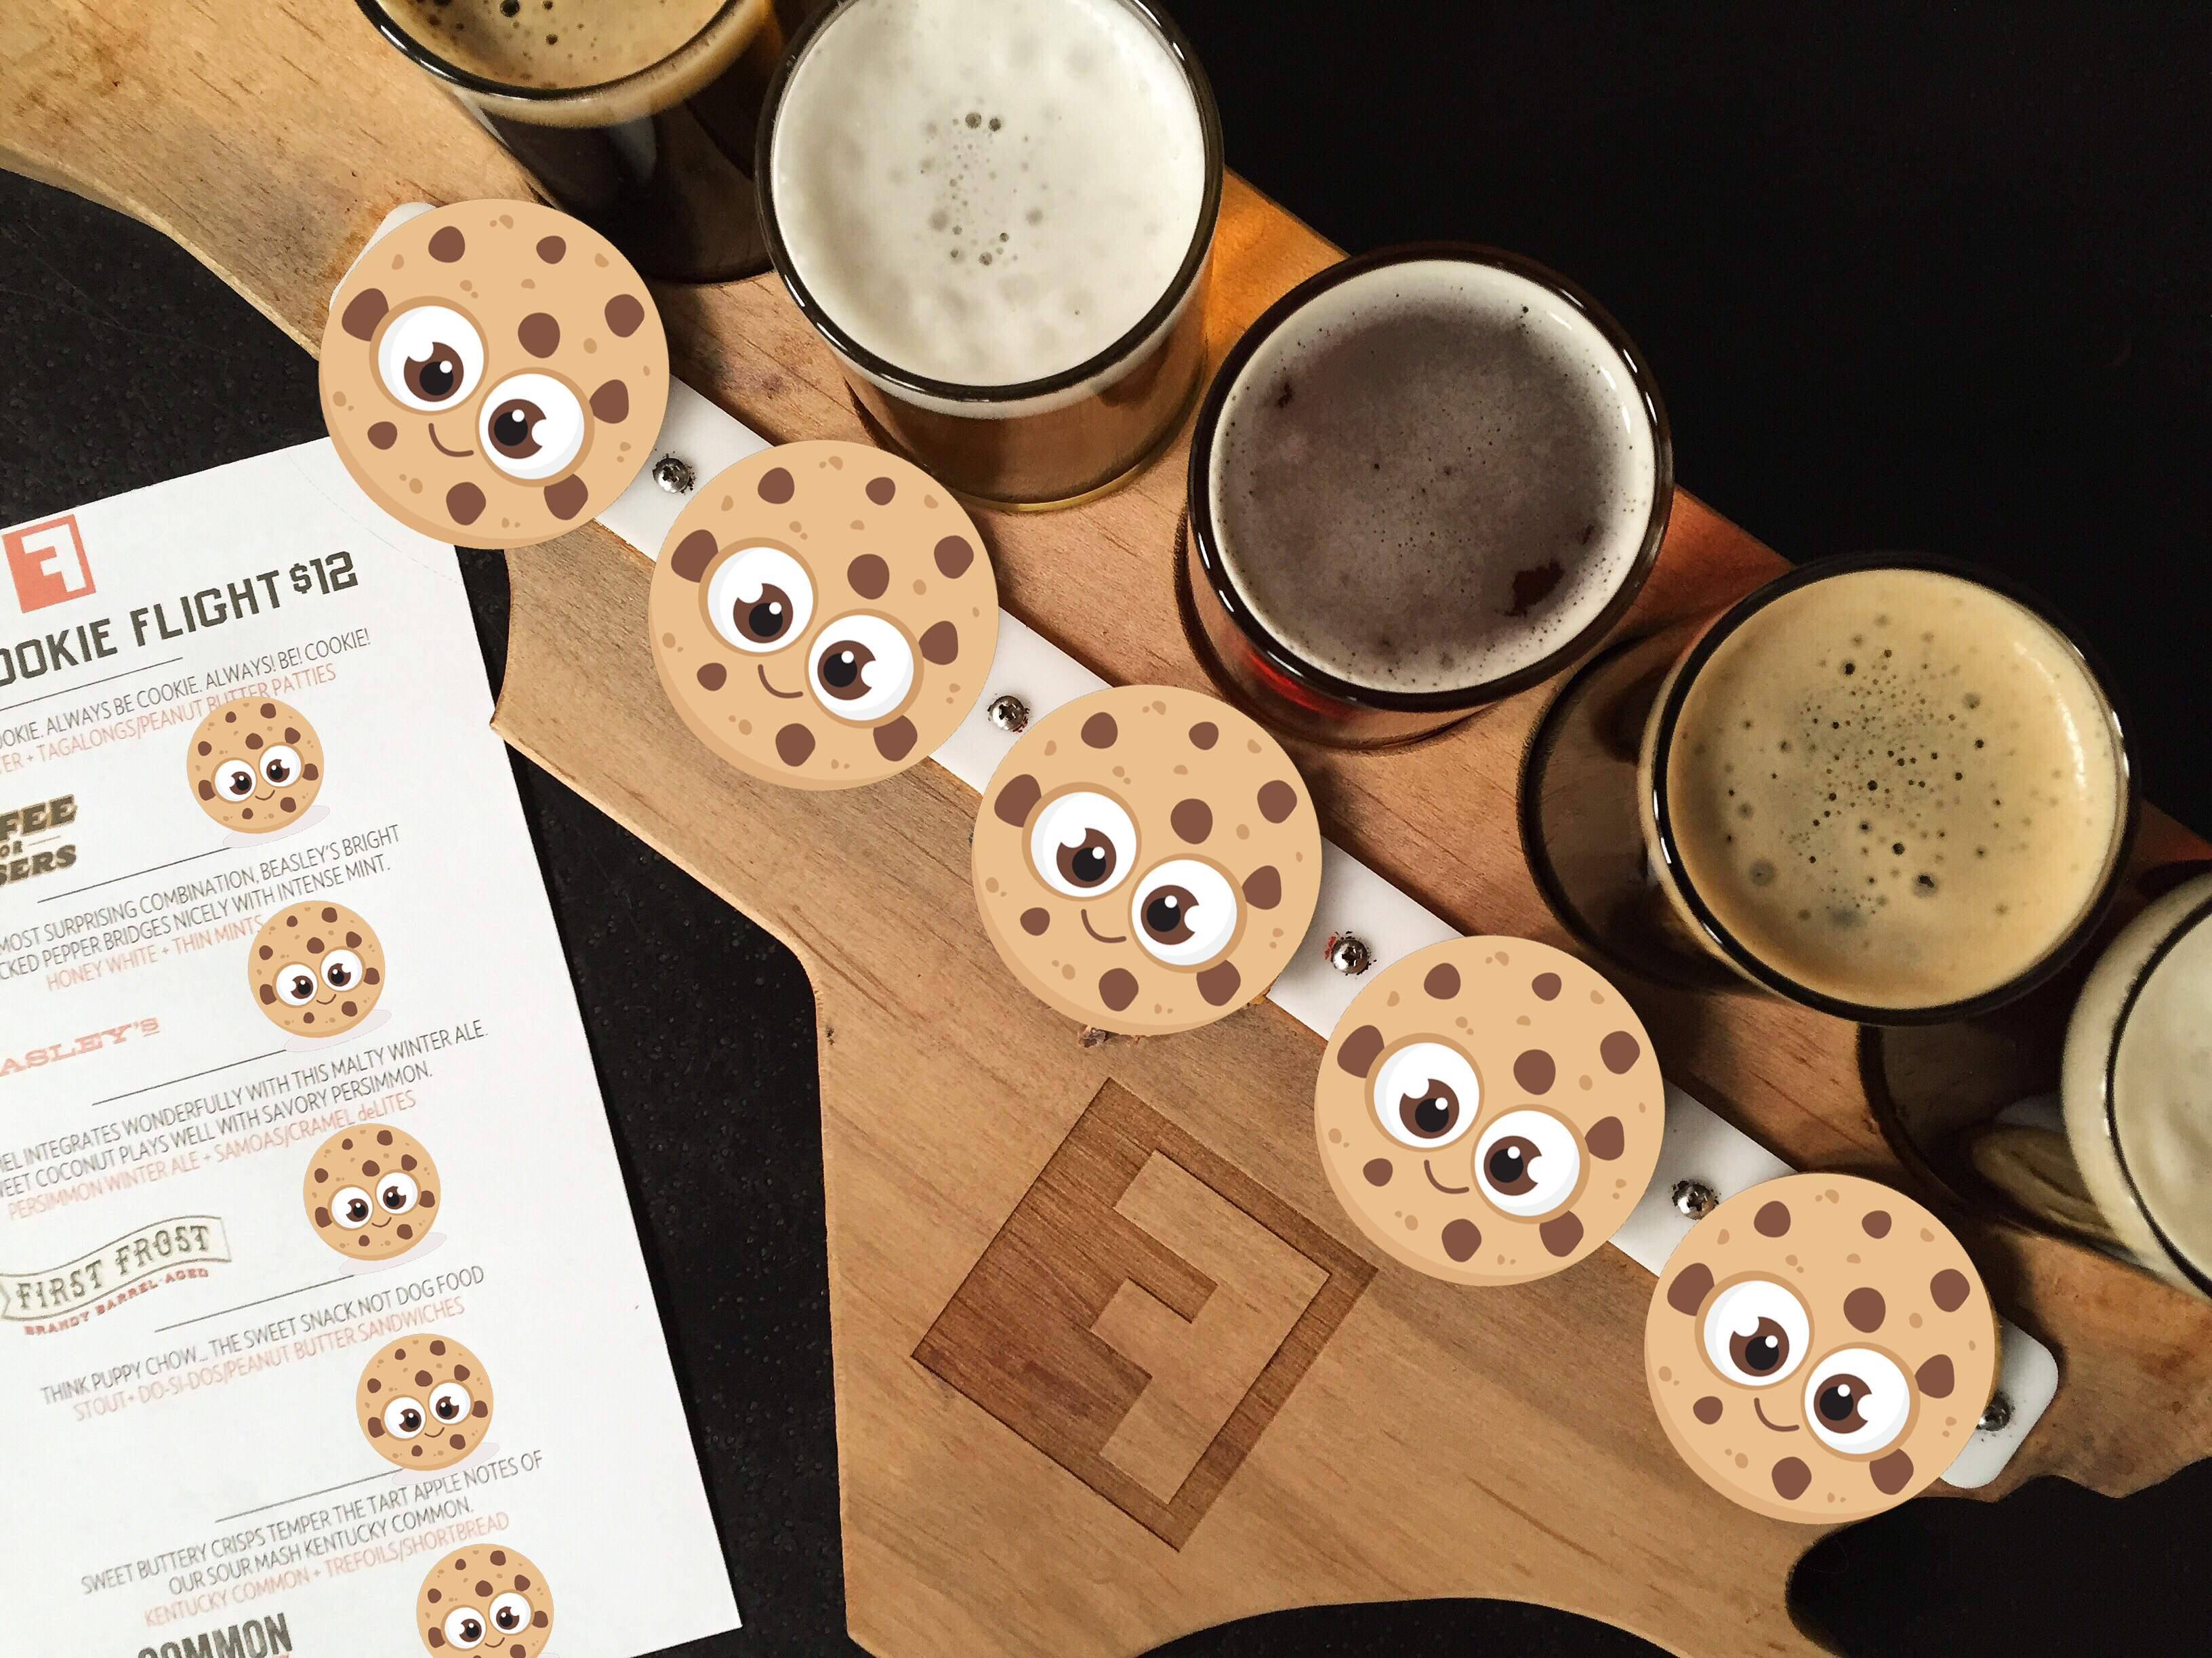 Beer-_Cookie-Flight_Mystery.png#asset:9950